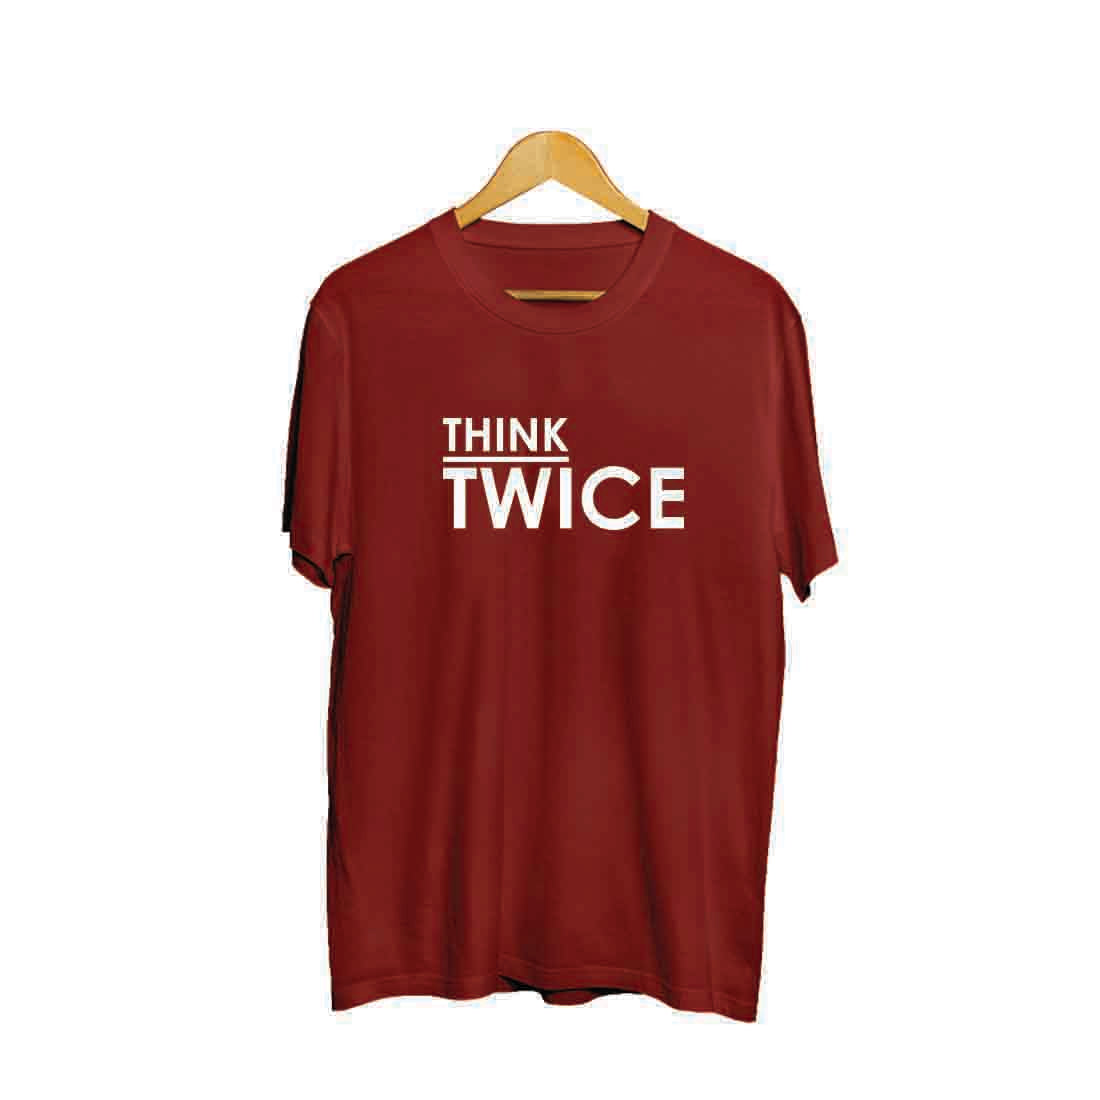 Kaos Tumblr Think Twice Terbaru - mypoly-indonesia.myshopify.com